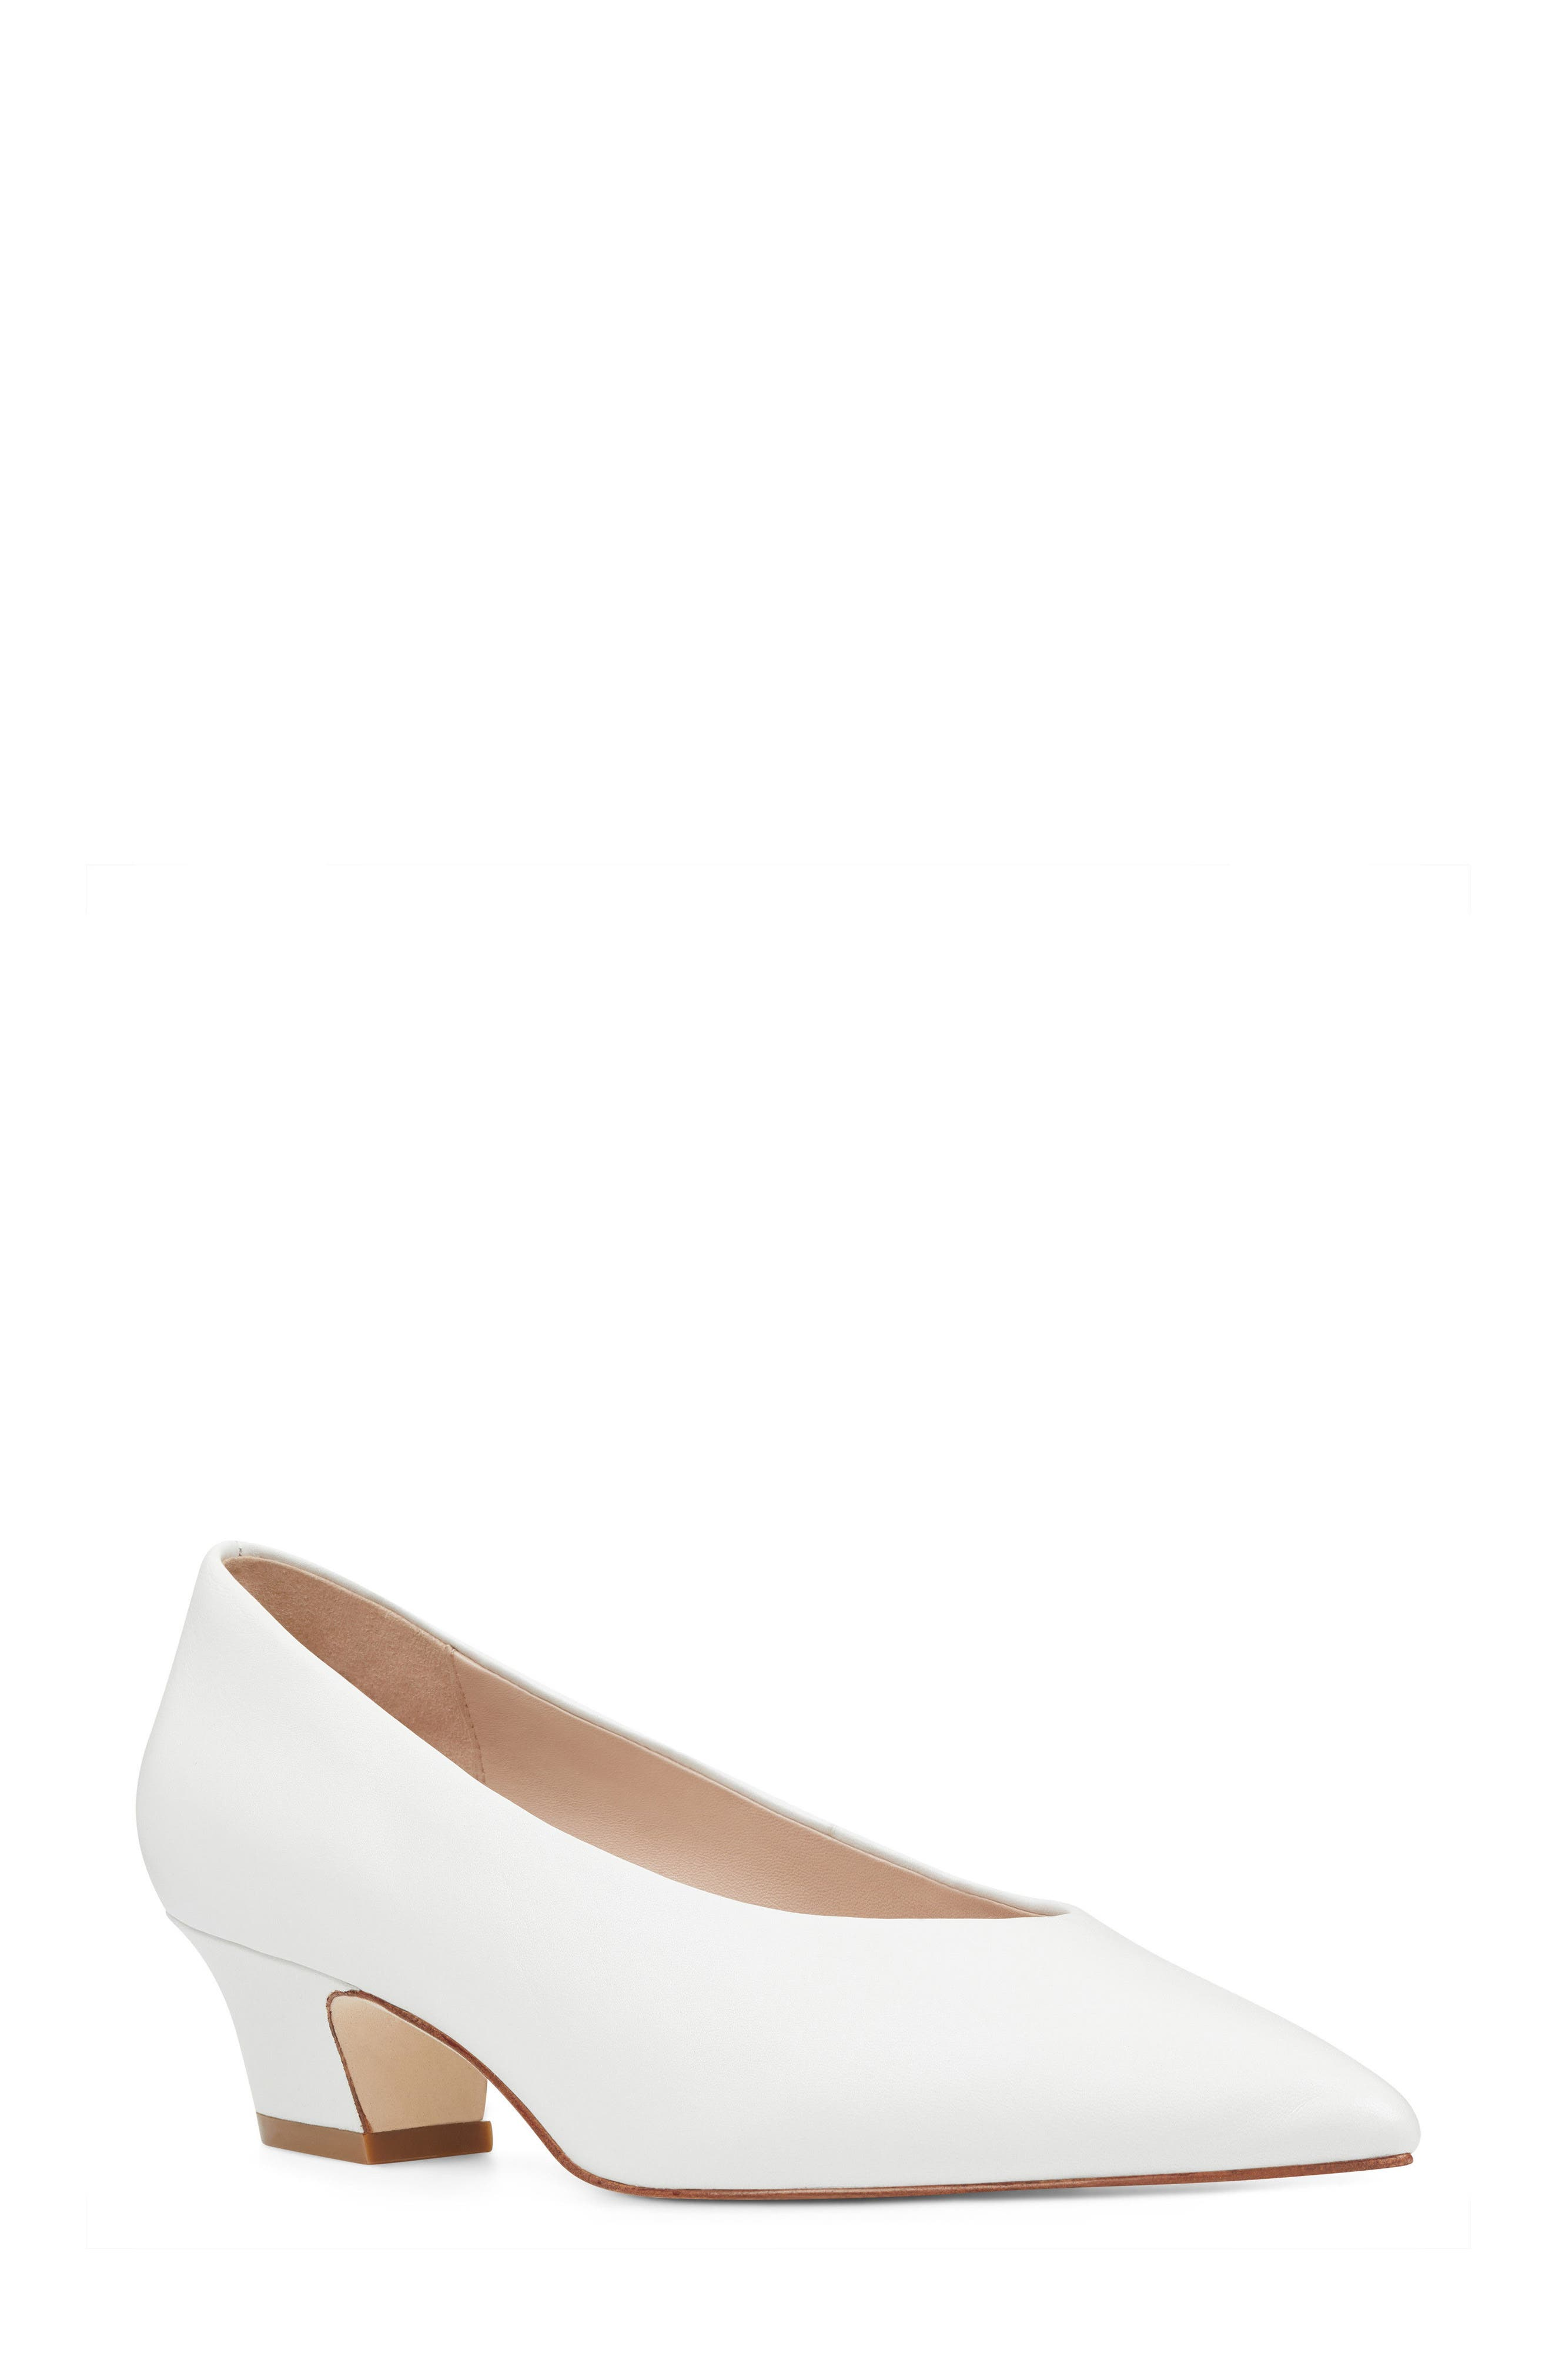 Nine West Kendra - 40th Anniversary Capsule Collection Pump (Women)